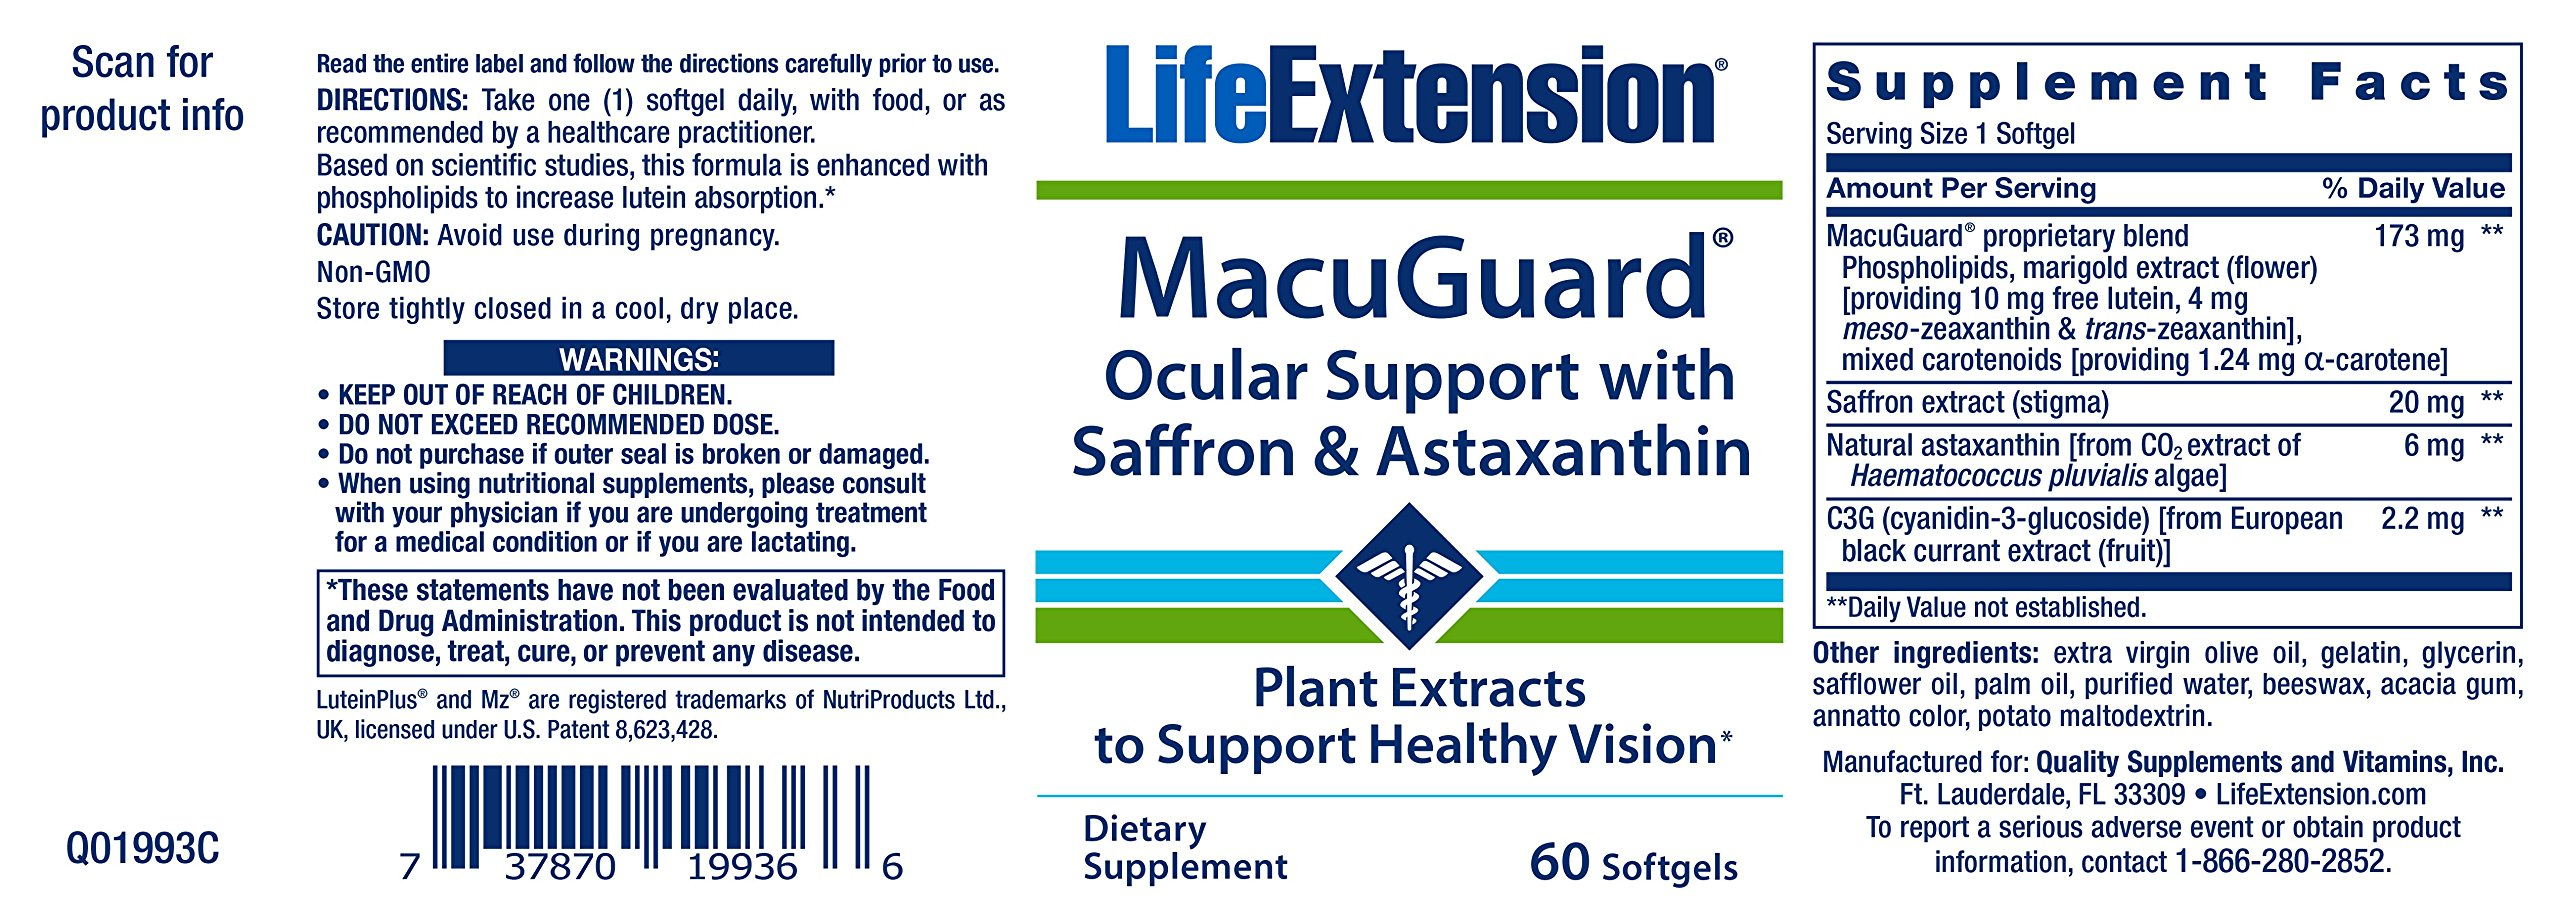 91JrxpouCxL - Life Extension MacuGuard Ocular Support with Saffron & Astaxanthin, 60 softgels 01993